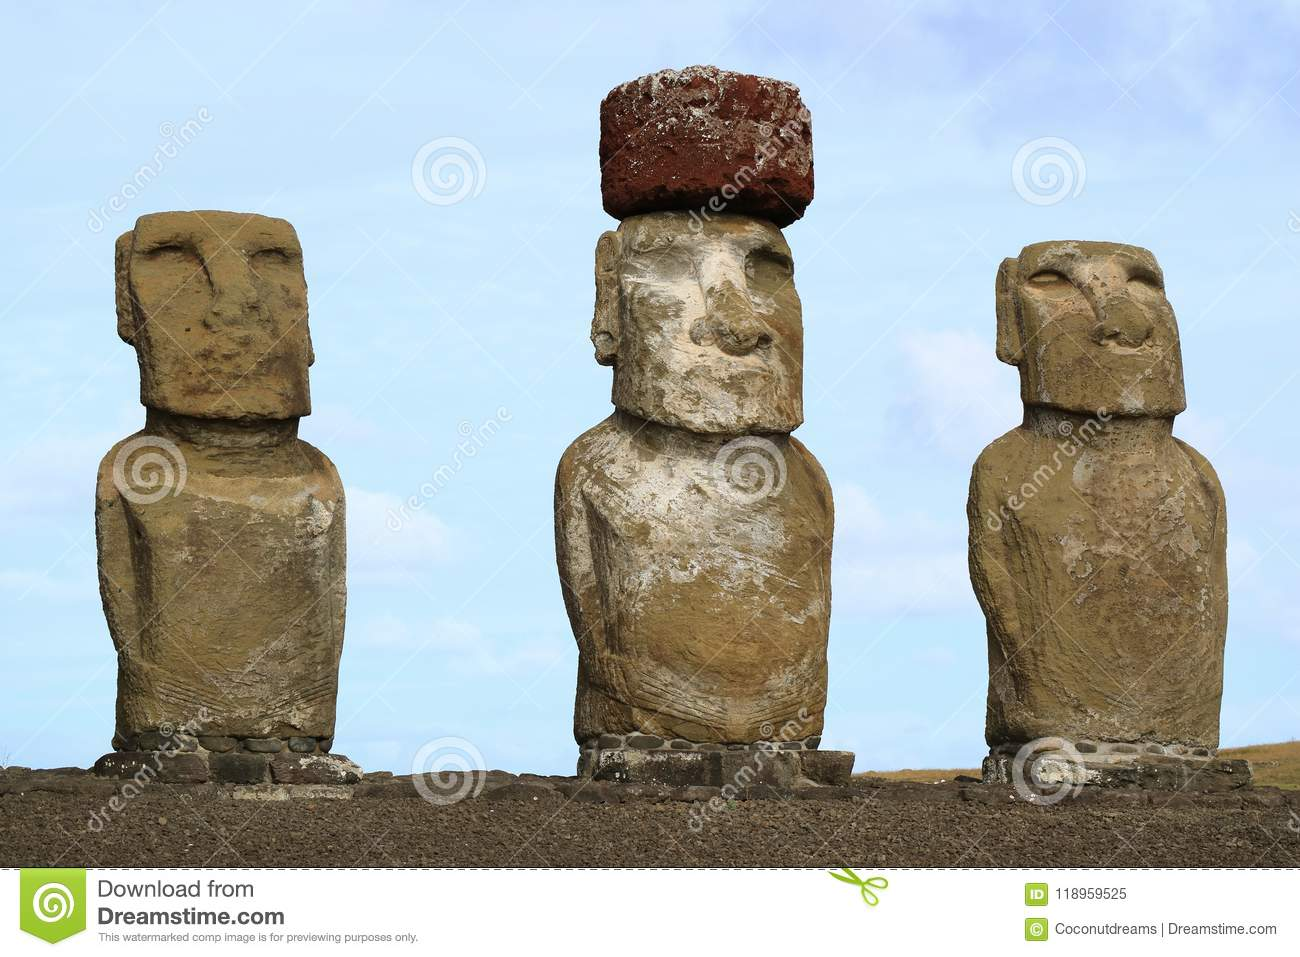 Pictures of Easter Island: The Moai at Ahu Tongariki were